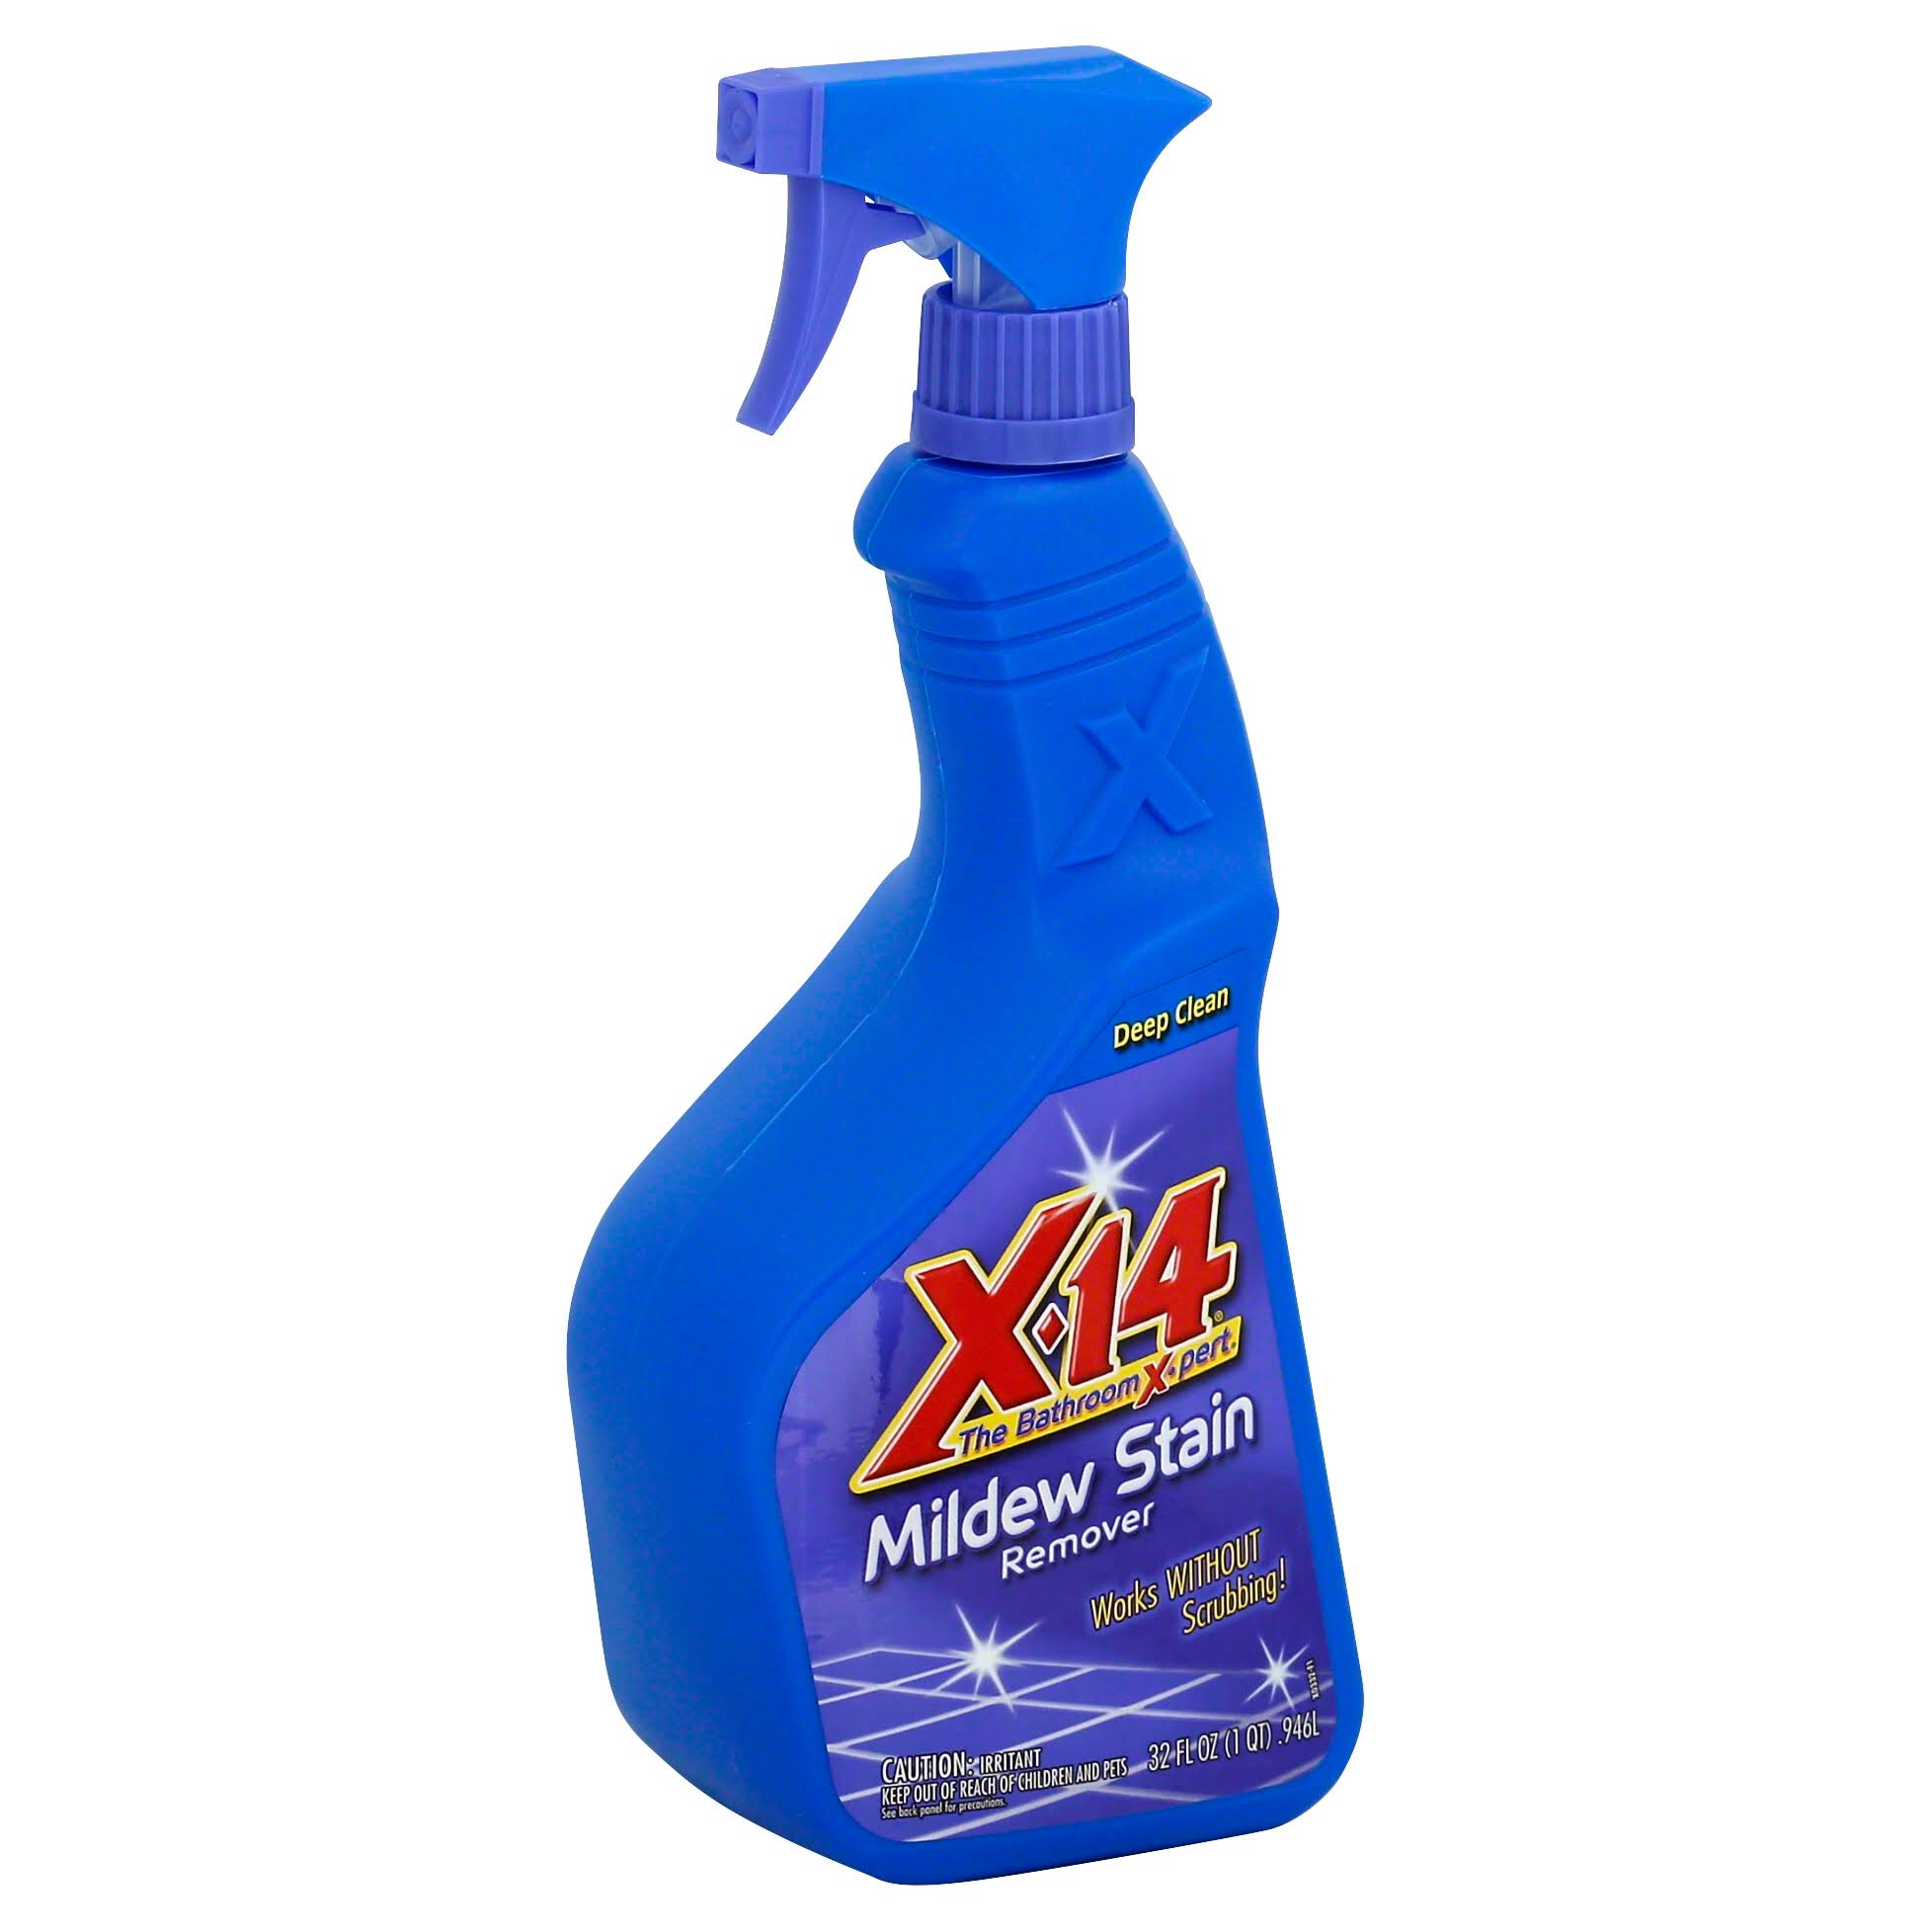 X-14 Mildew Stain Remover Trigger Spray